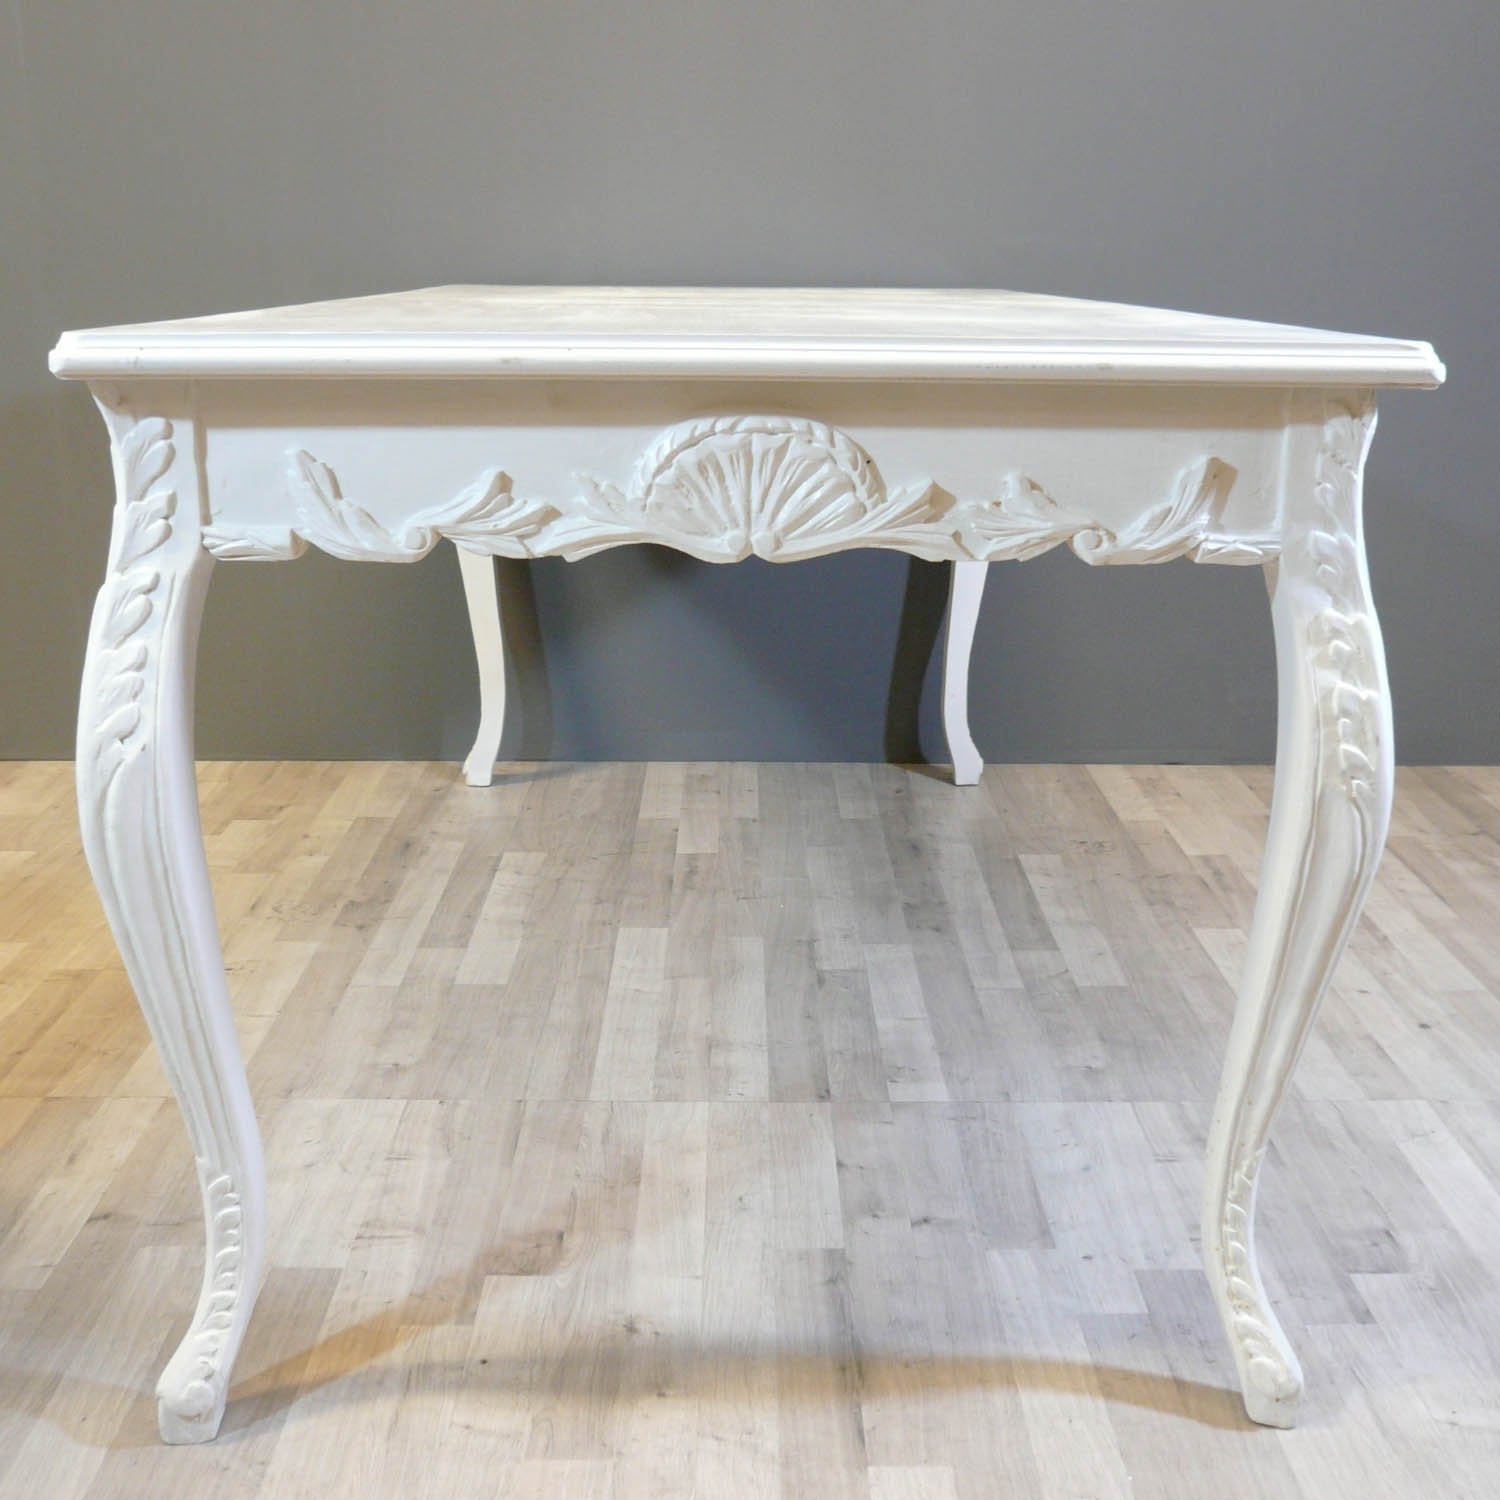 Decoration De Table Baroque Table Baroque Blanche Meuble Baroque